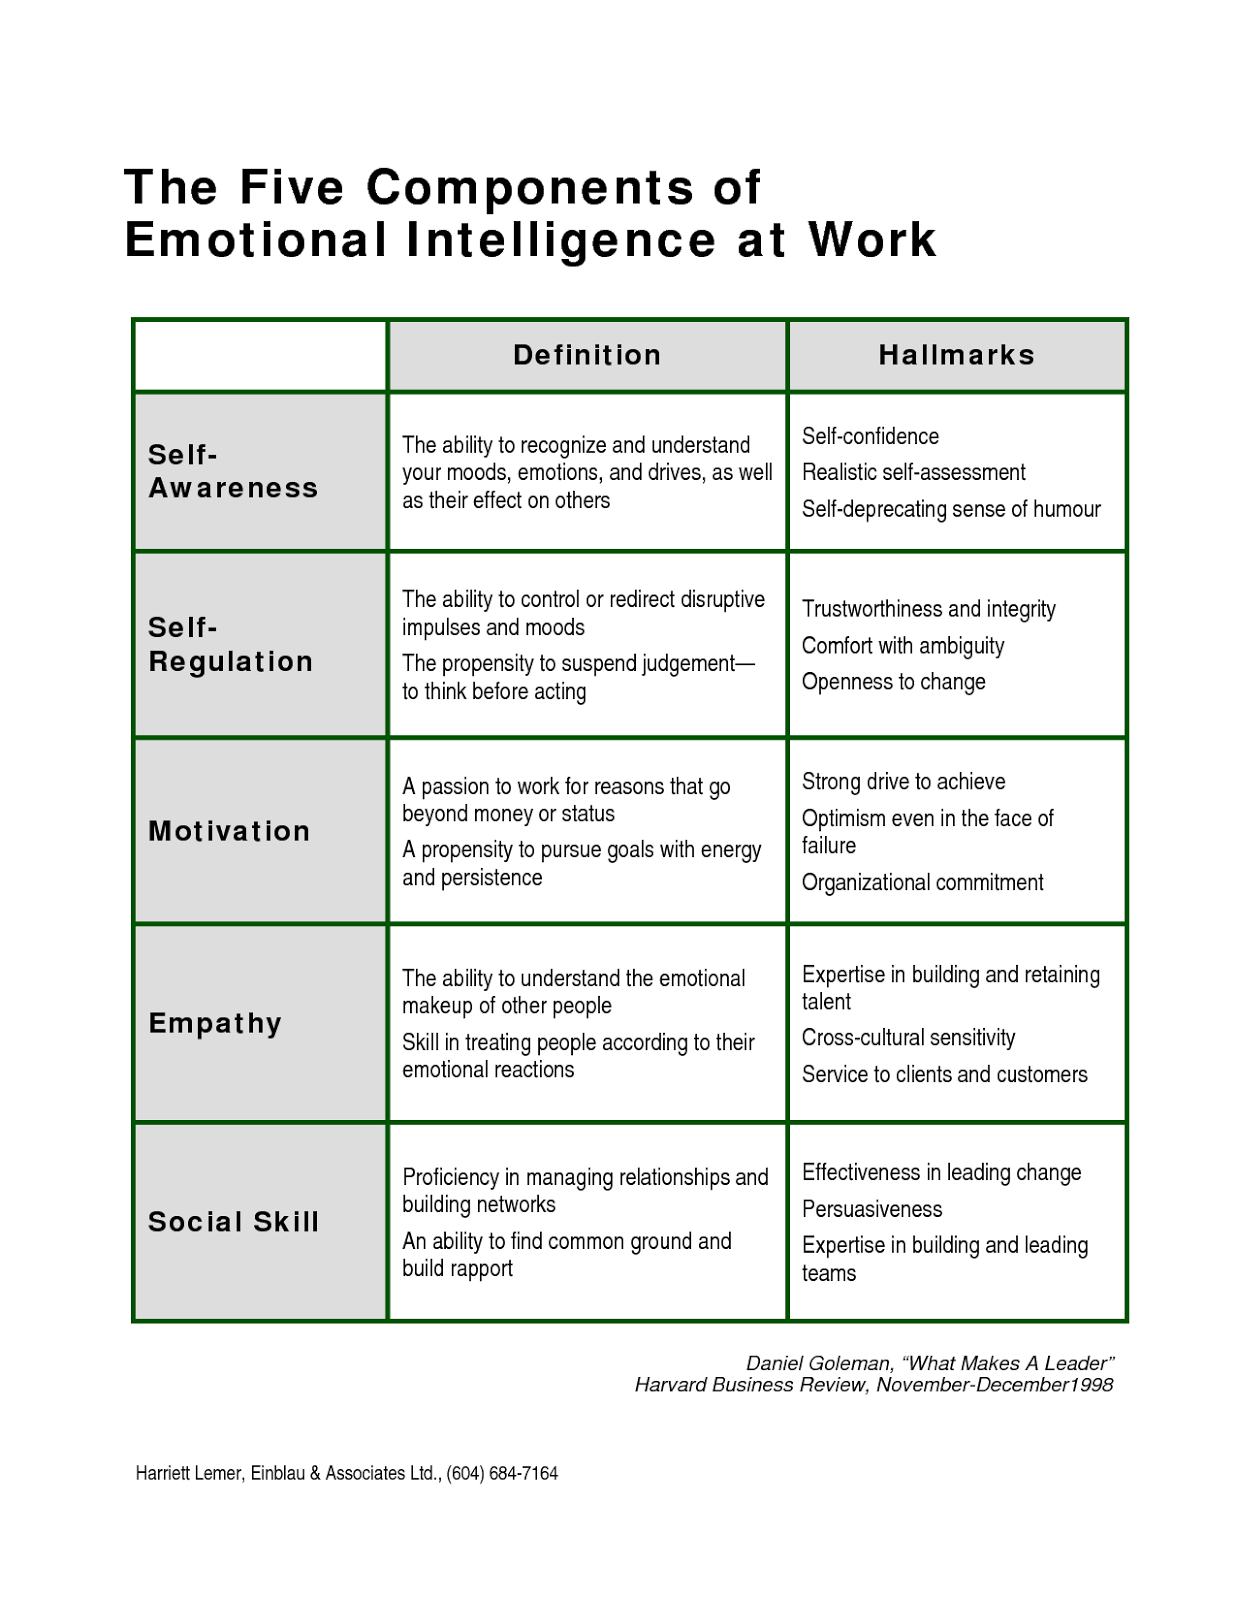 Iammoulude Emotional Intelligence Components And Emotional